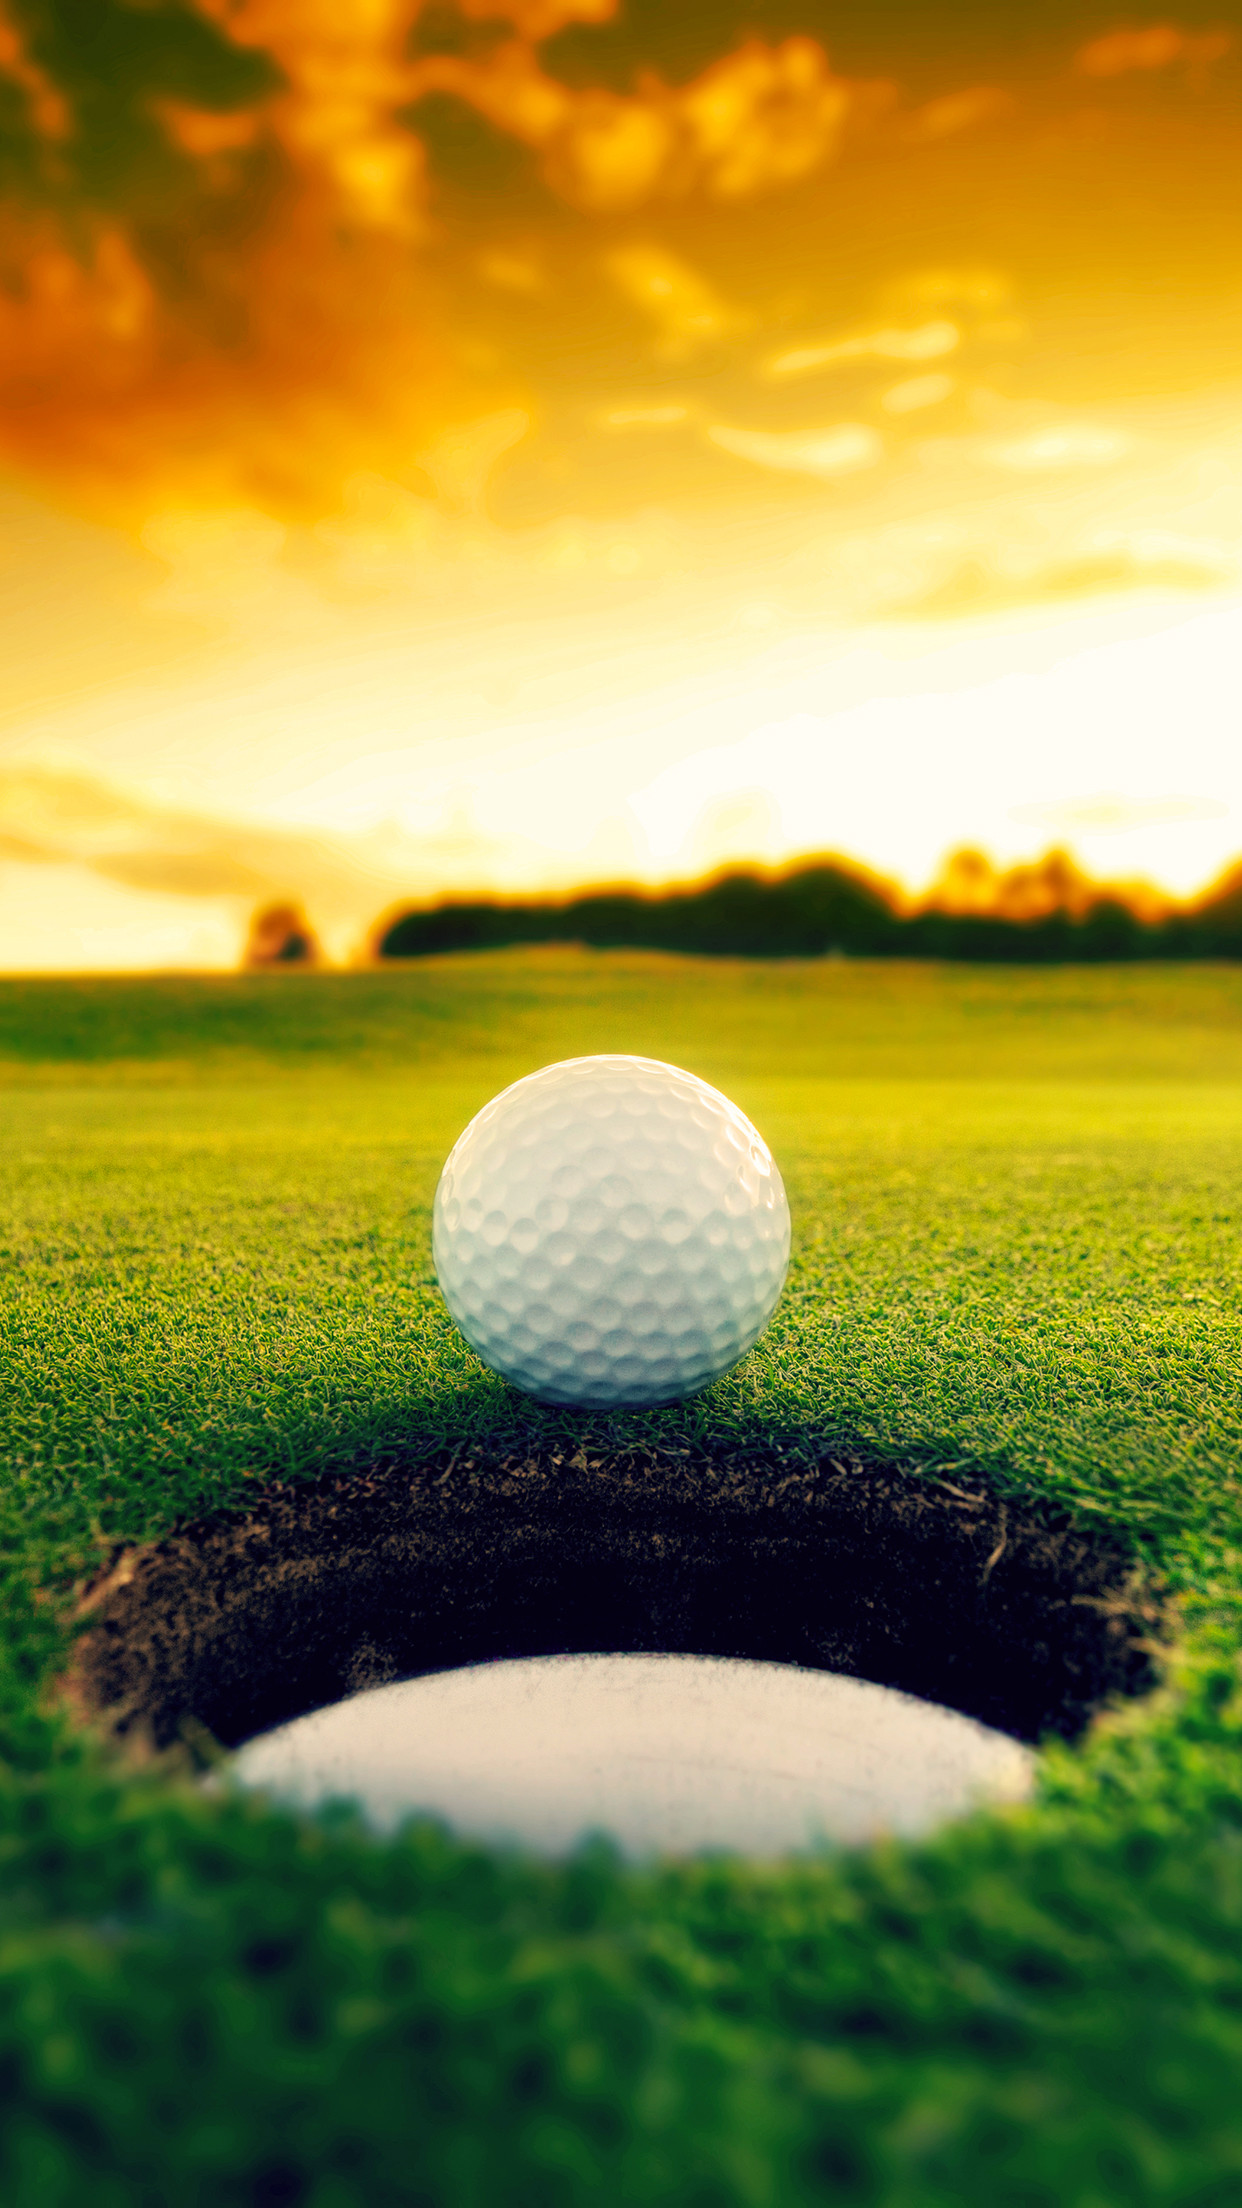 Iphone Golf Wallpaper 60 Images